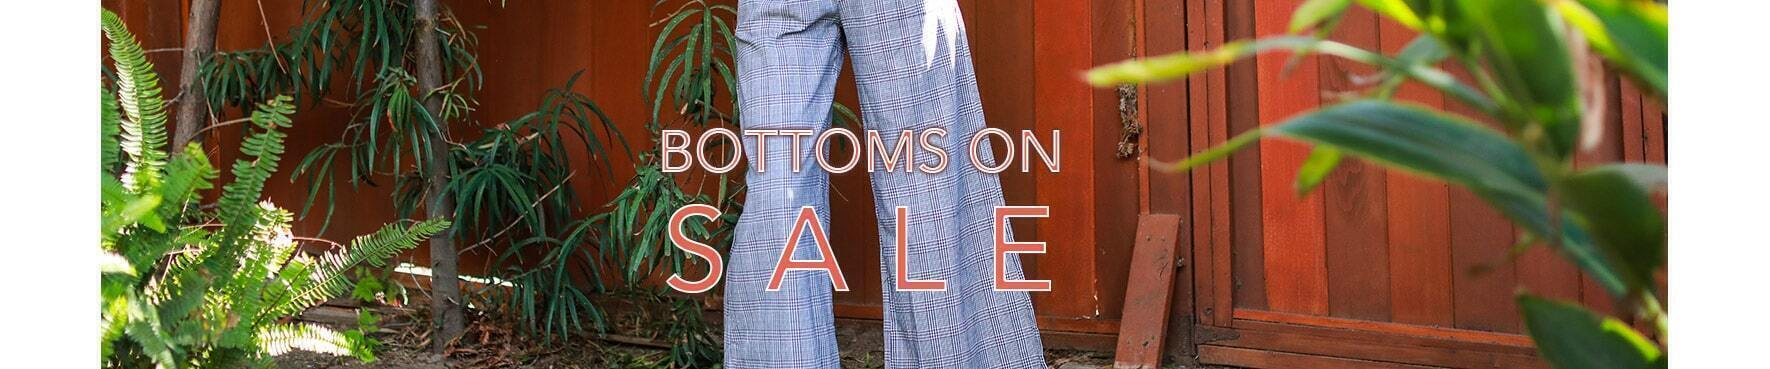 Bottoms on Sale